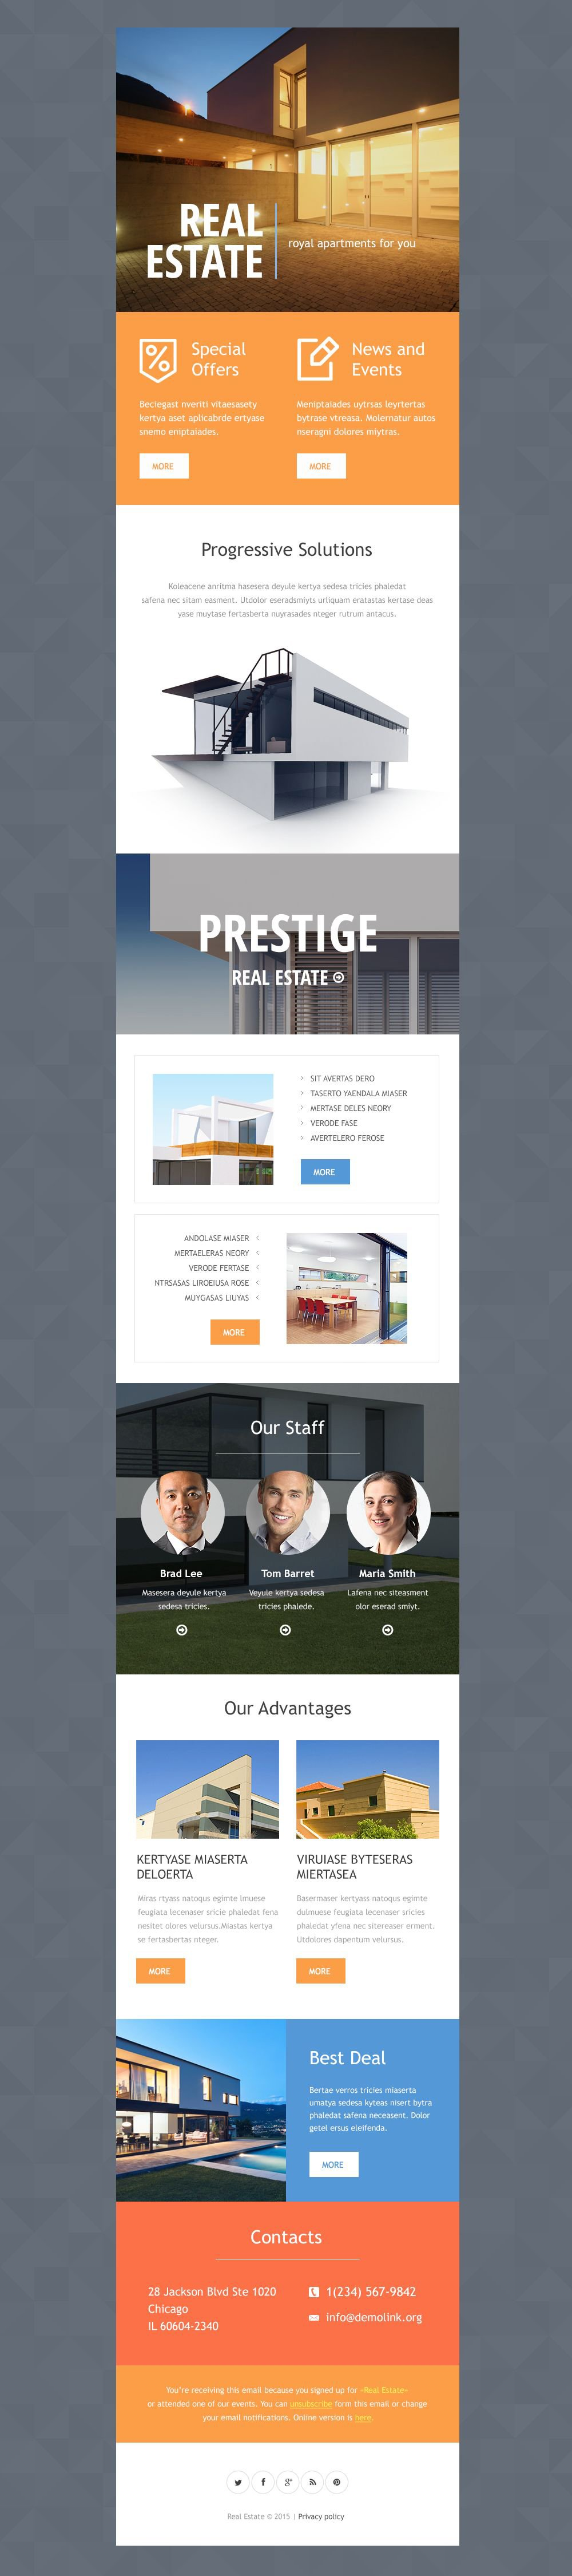 The Real Estate Agency Newsletter Template Design 53671, one of the best Newsletter templates of its kind (real estate, most popular), also known as real estate agency Newsletter template, services Newsletter template, house Newsletter template, home Newsletter template, apartment Newsletter template, buildings Newsletter template, finance Newsletter template, loan Newsletter template, sales Newsletter template, rentals Newsletter template, management Newsletter template, search Newsletter template, team Newsletter template, money Newsletter template, foreclosure Newsletter template, estimator Newsletter template, investment Newsletter template, development Newsletter template, constructions Newsletter template, architecture Newsletter template, engineering Newsletter template, apartment Newsletter template, sale Newsletter template, rent Newsletter template, architecture Newsletter template, broker Newsletter template, lots and related with real estate agency, services, house, home, apartment, buildings, finance, loan, sales, rentals, management, search, team, money, foreclosure, estimator, investment, development, constructions, architecture, engineering, apartment, sale, rent, architecture, broker, lots, etc.